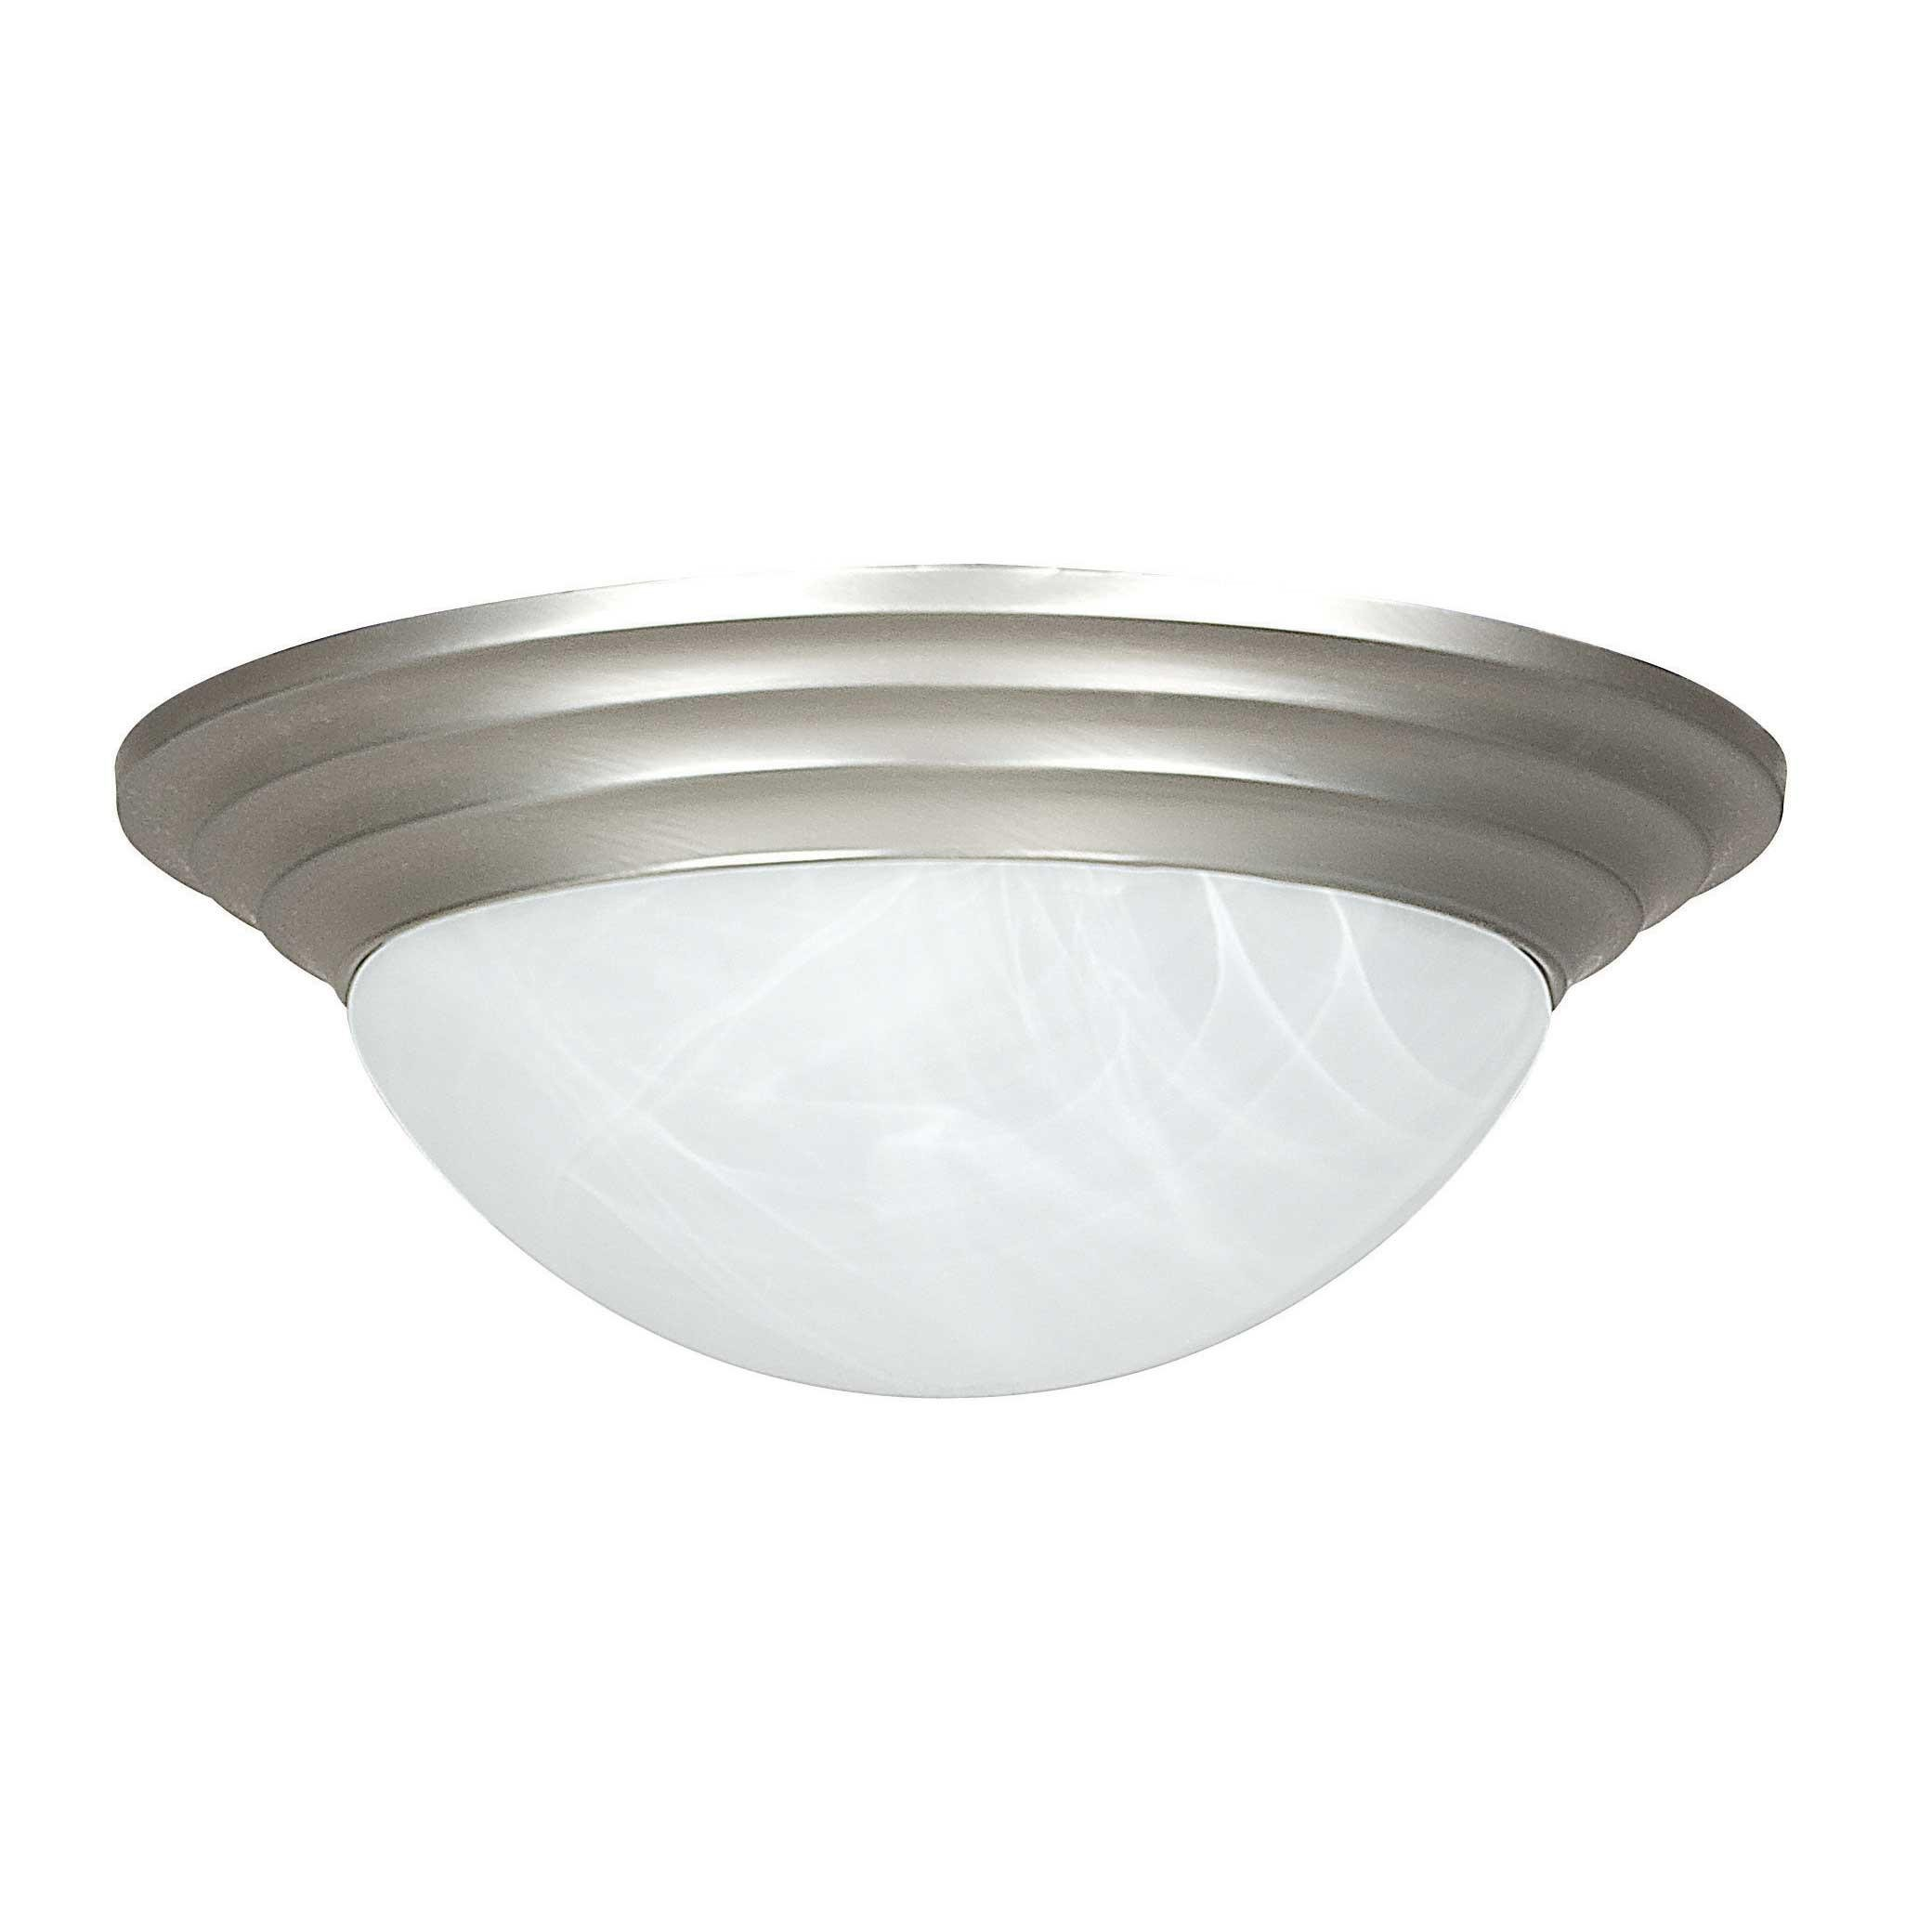 Sunset Lighting F7166-53 Flush Mount with Twist on Faux Alabaster Glass, Satin Nickel Finish